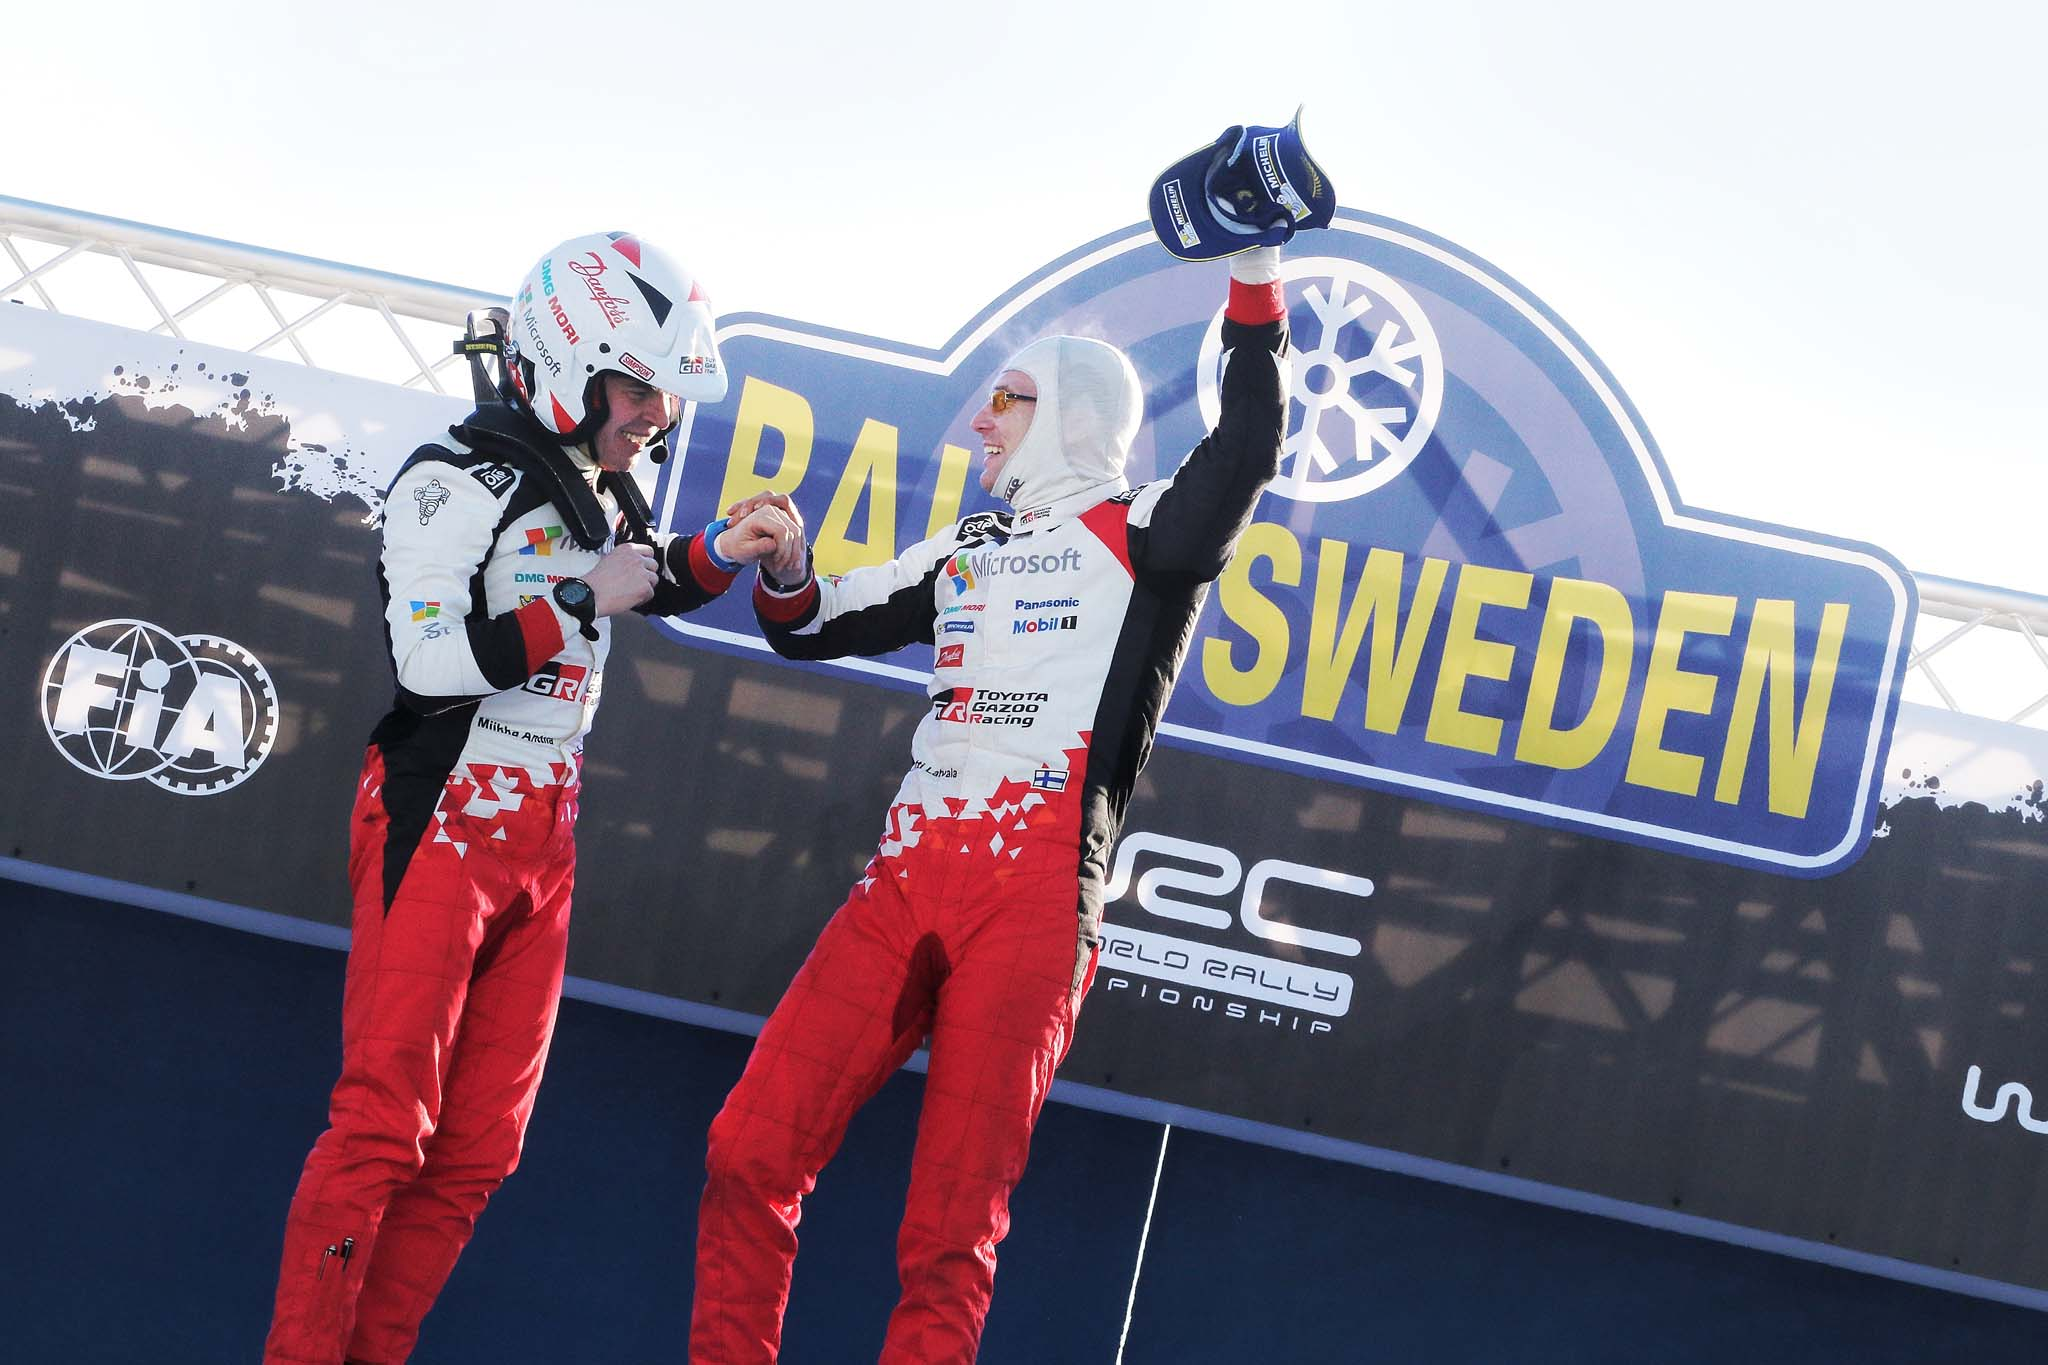 FIA WORLD RALLY CHAMPIONSHIP 2017 – WRC SWEDEN